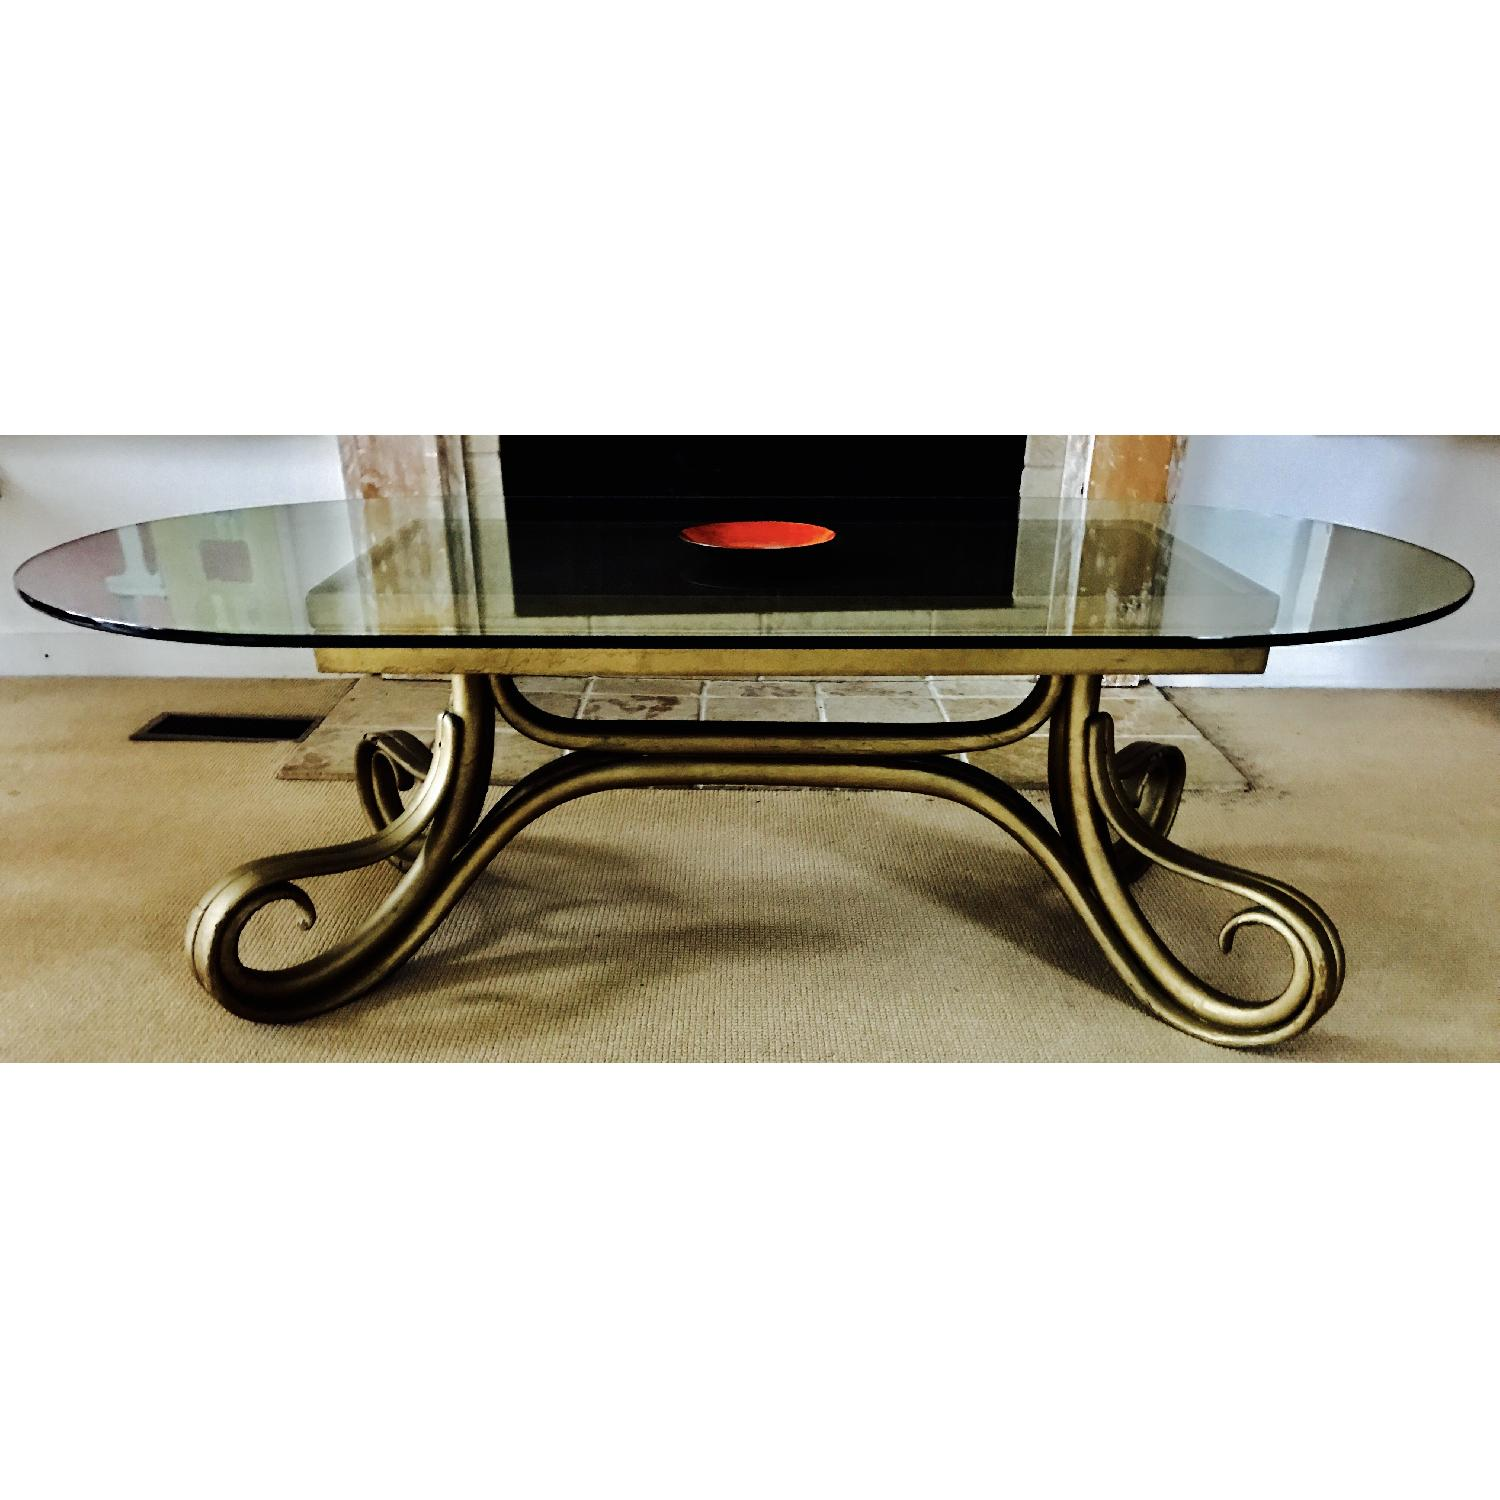 Vintage Thonet Bentwood Glass Top Coffee Table - image-7